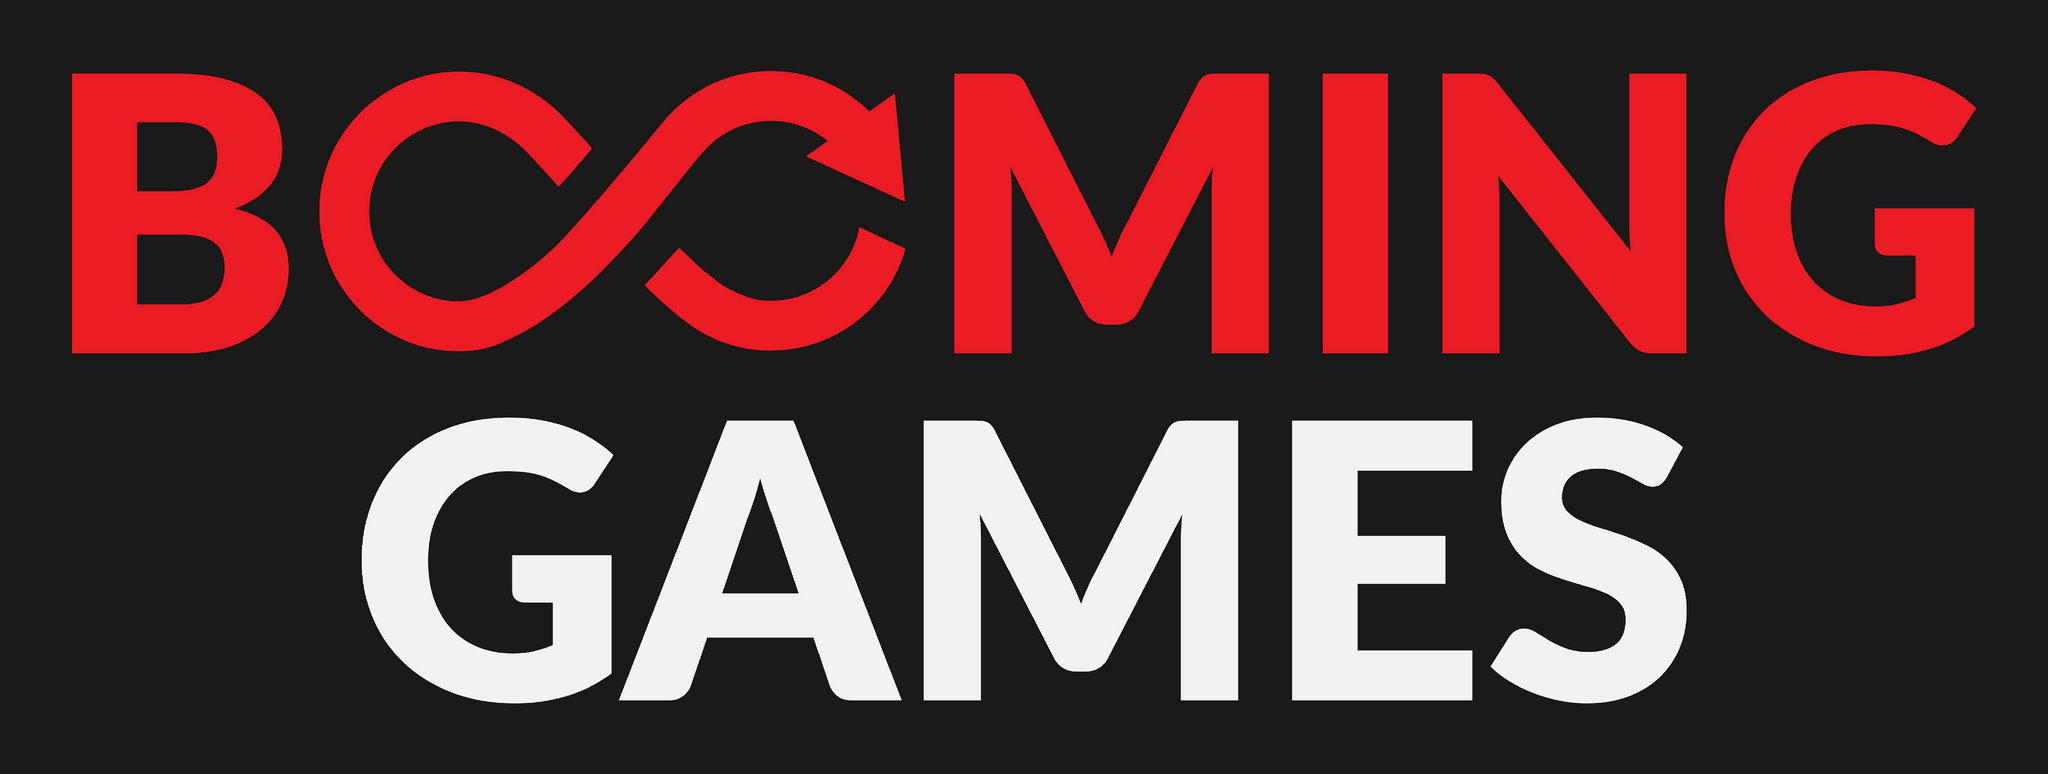 Booming Games Malta Limited